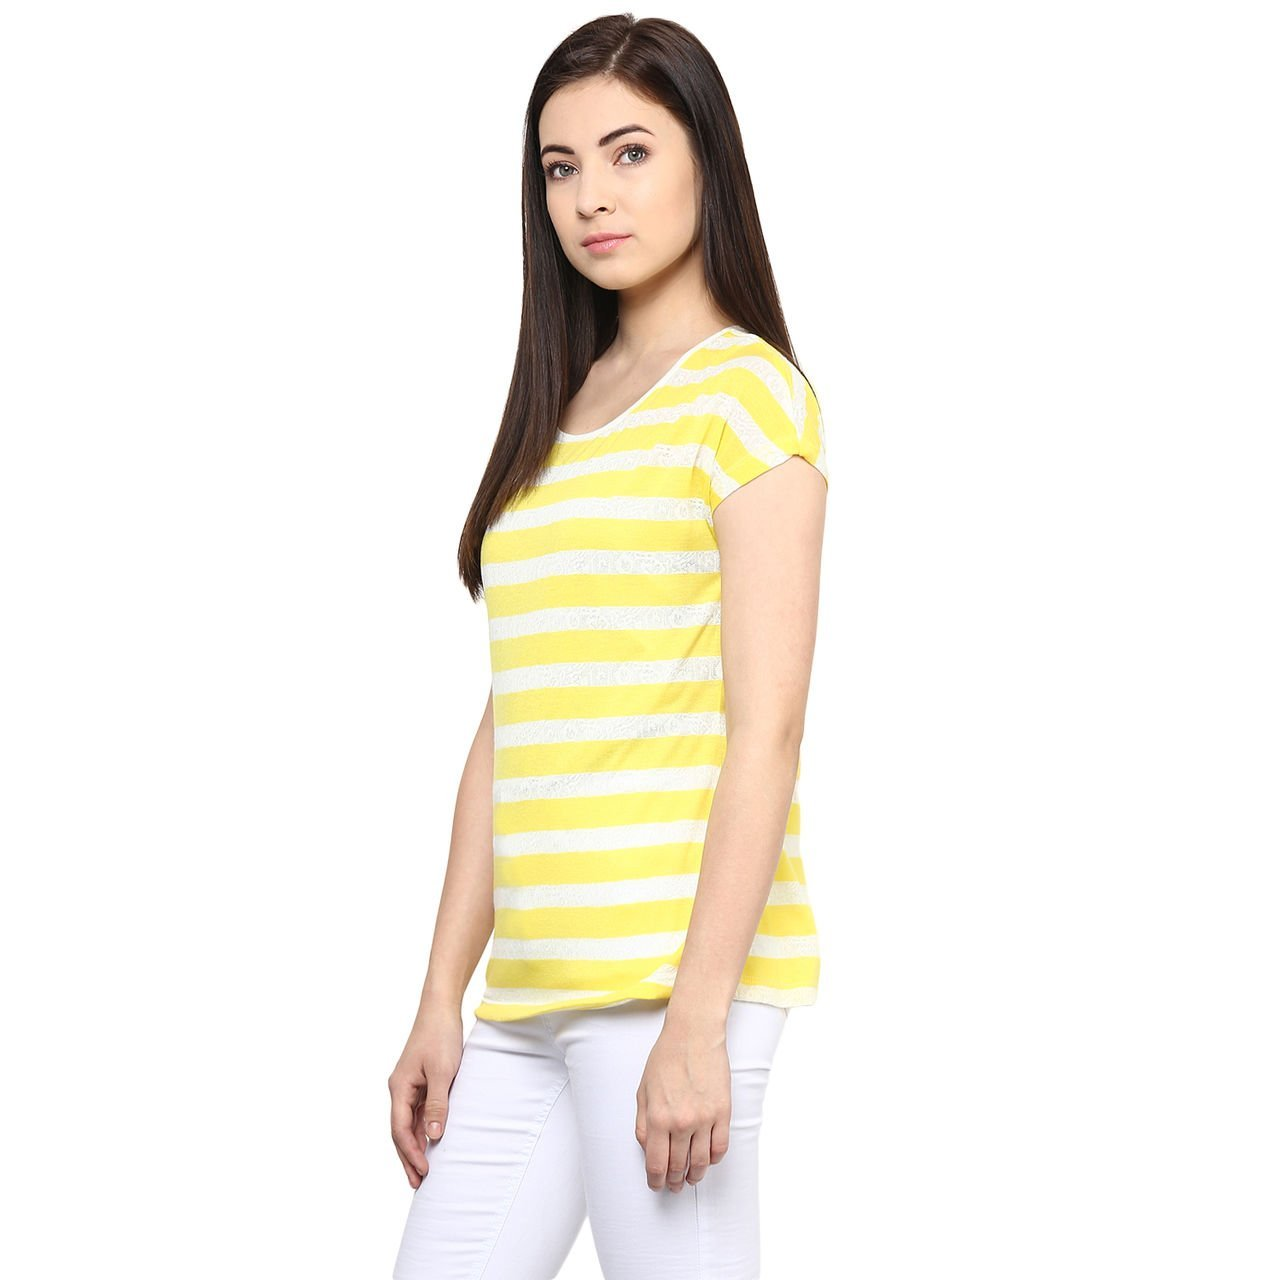 0b1cc3ff9a38b7 Honey by Pantaloons Women's Striped Regular Fit T-Shirt  (110006293_Yellow_Large): Amazon.in: Clothing & Accessories